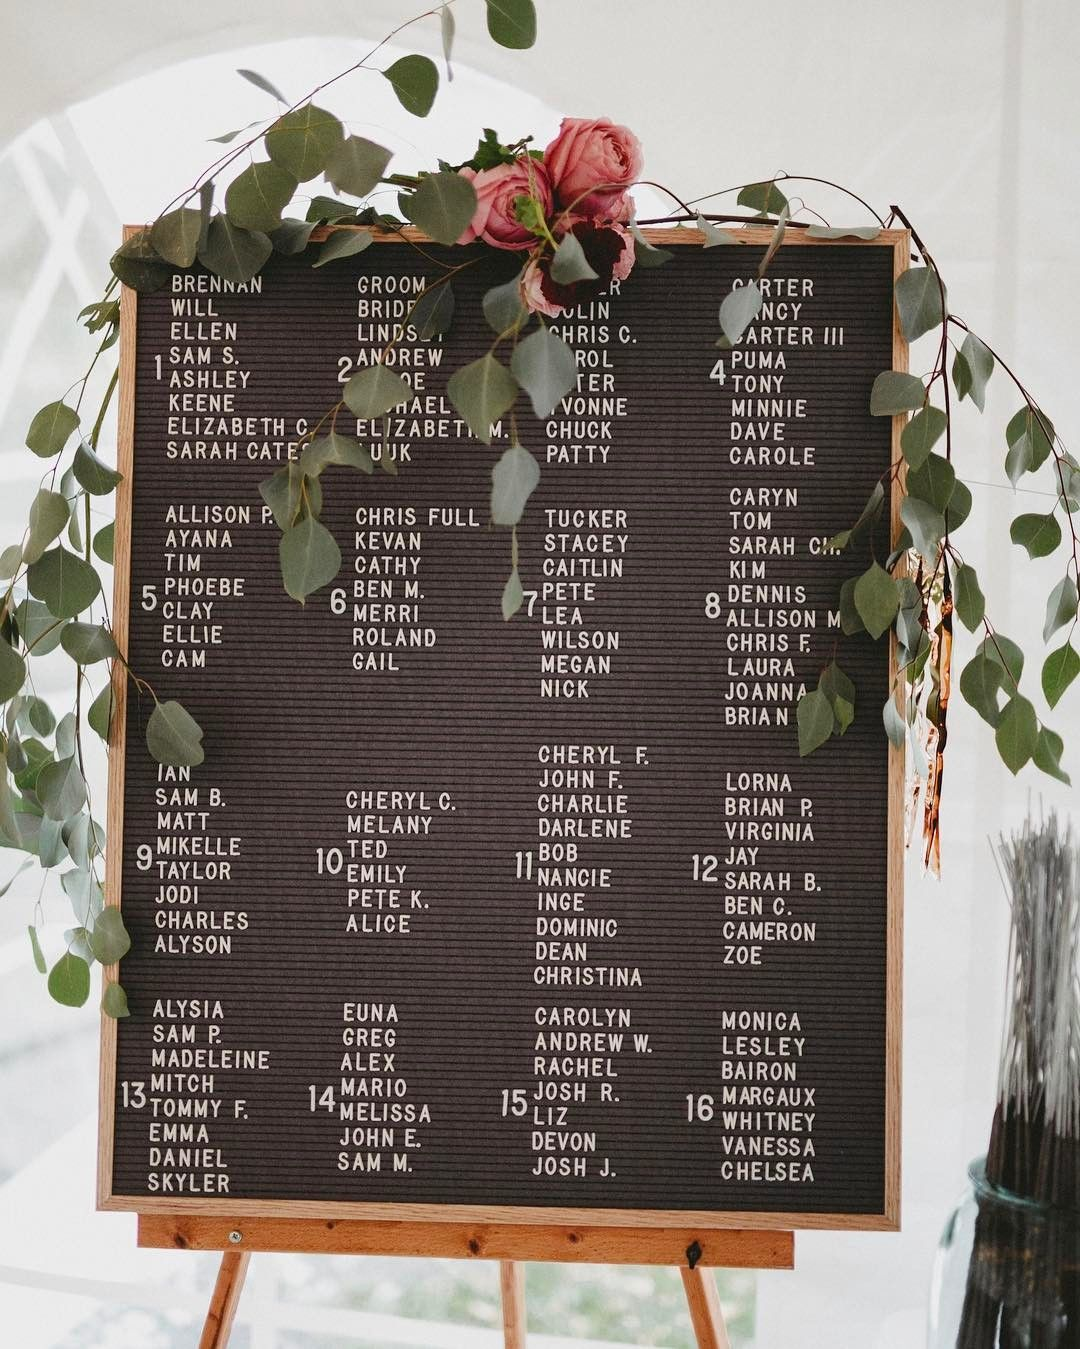 4 876 Likes 19 Comments Letterfolk Letterfolk On Instagram You Do You Seating Chart Wedding Wedding Table Seating Chart Wedding Table Assignments